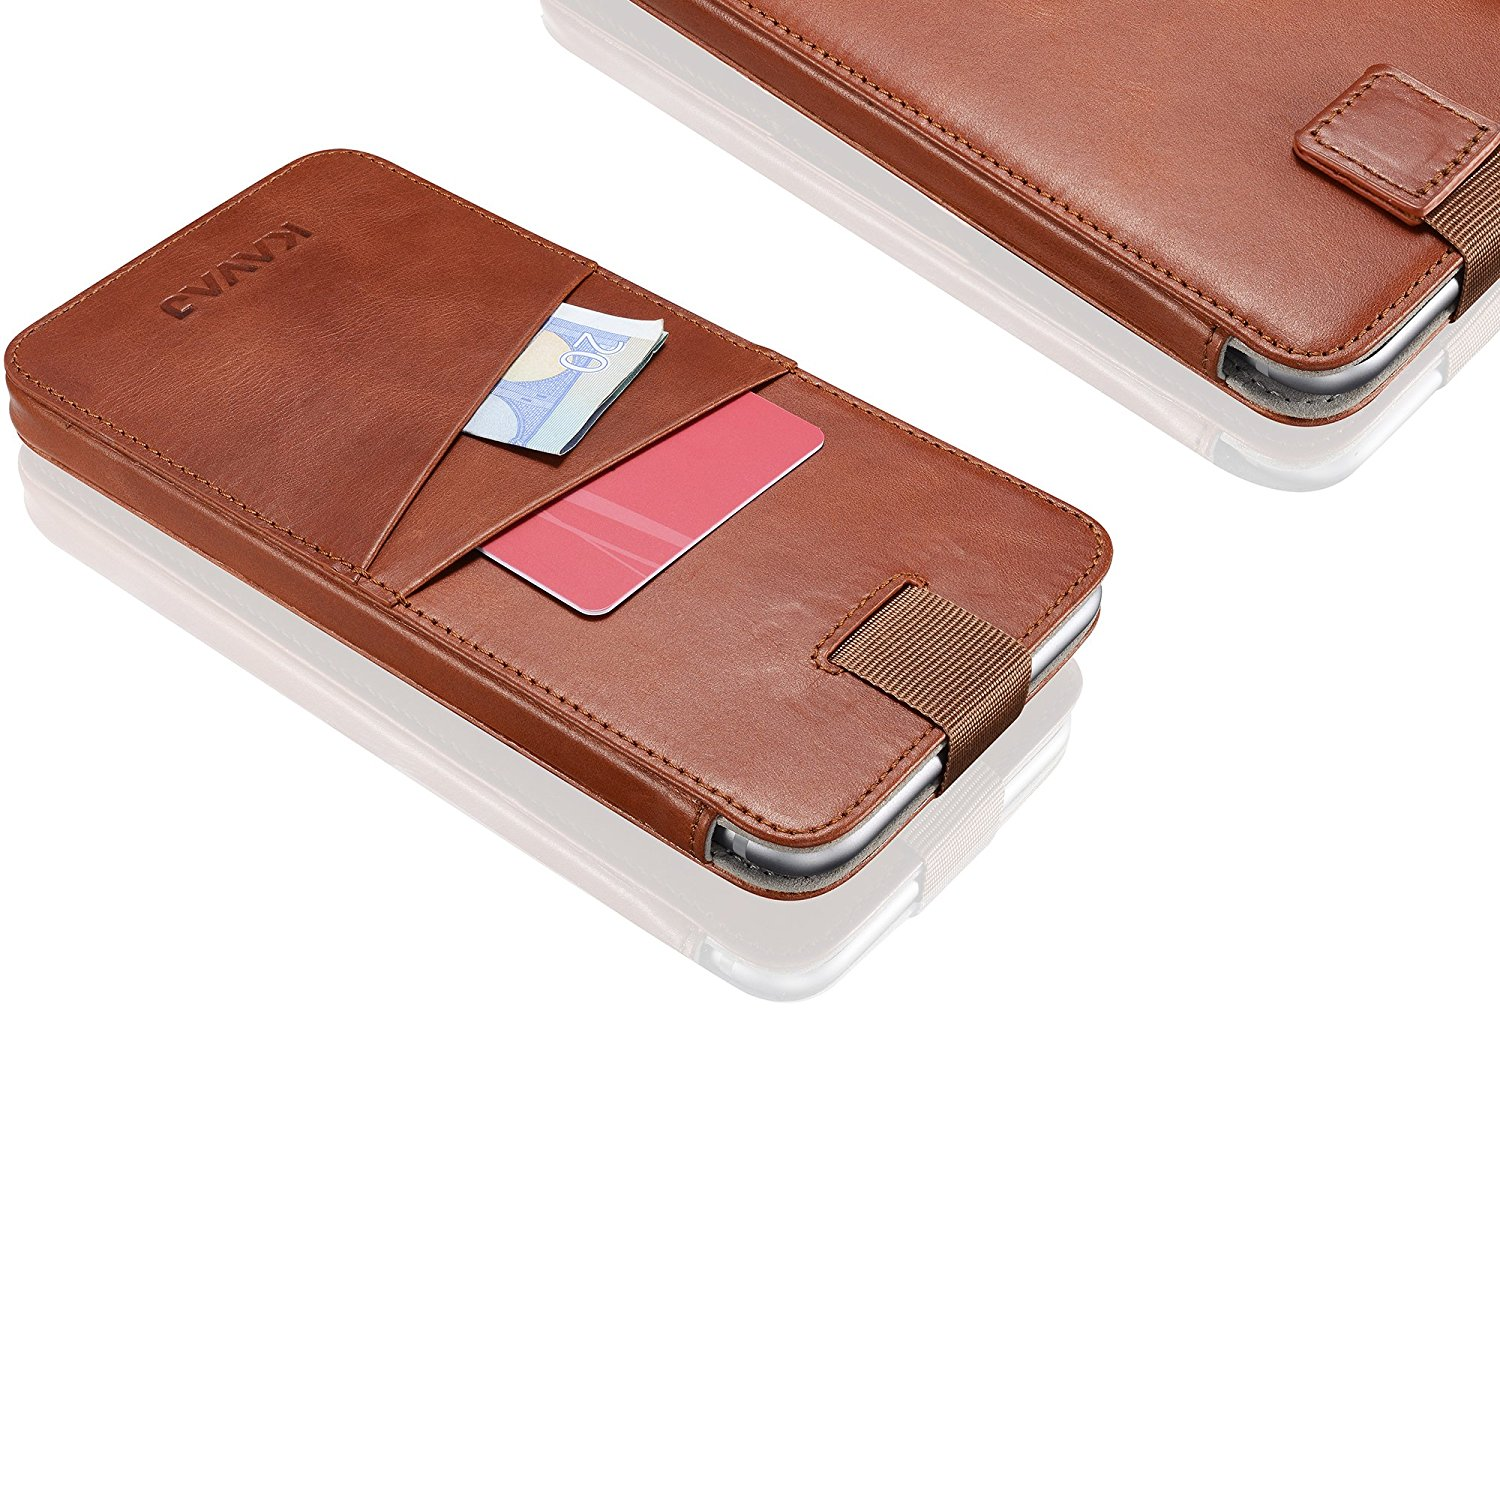 Classic design leather phone sleeve case